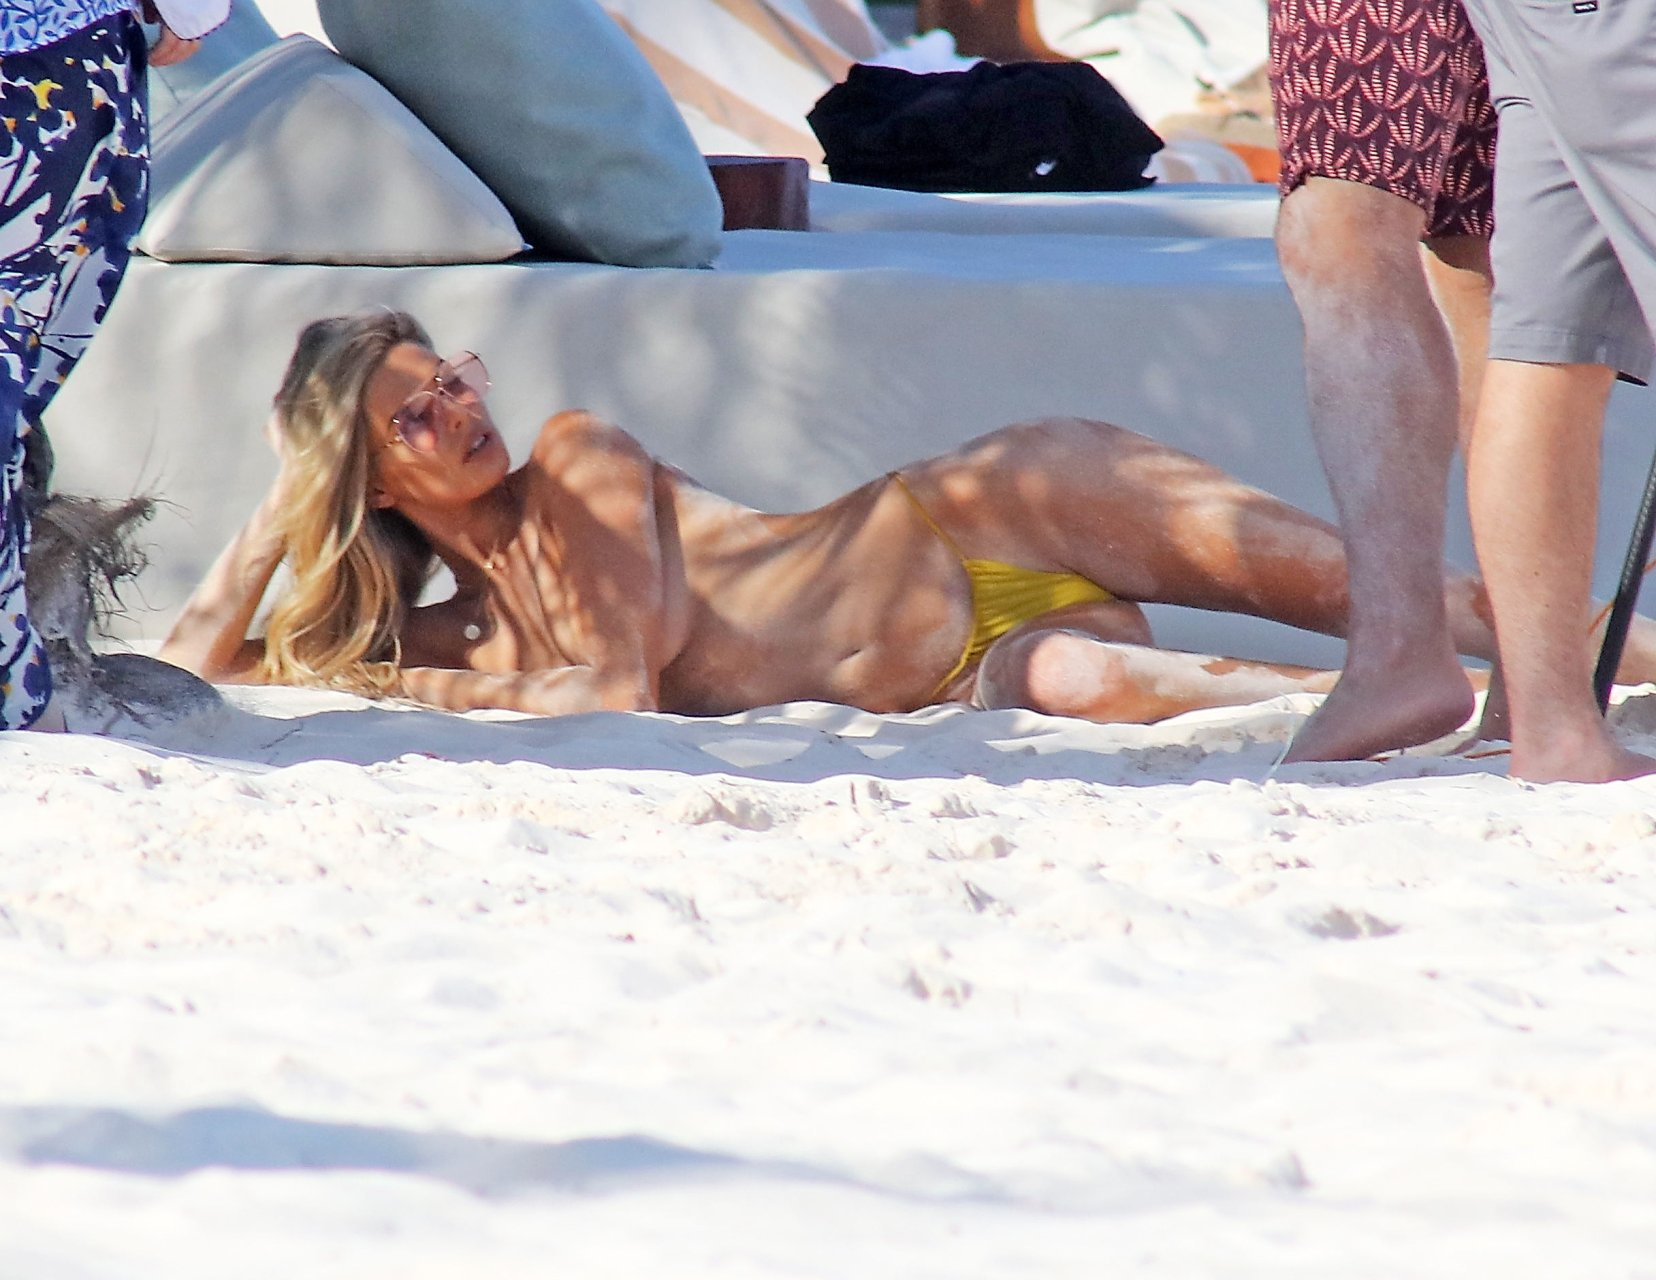 Watch Dirty danielle knudson poses topless 27 Photos video